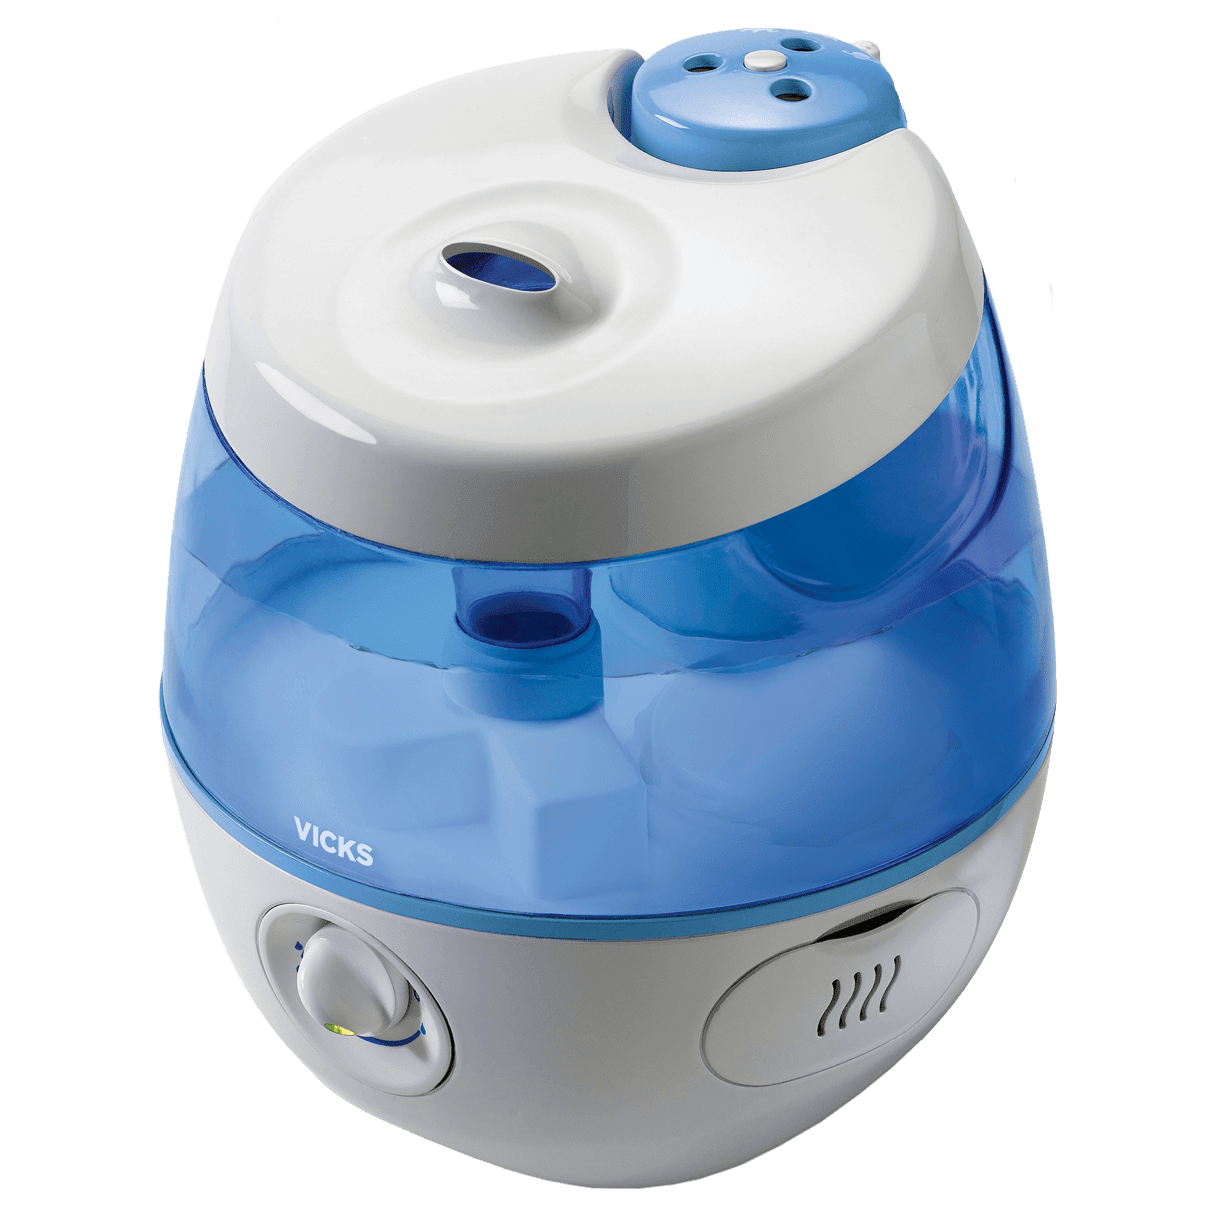 VICKS® SWEETDREAMS COOL MIST HUMIDIFIER WITH PROJECTOR (VUL575E)